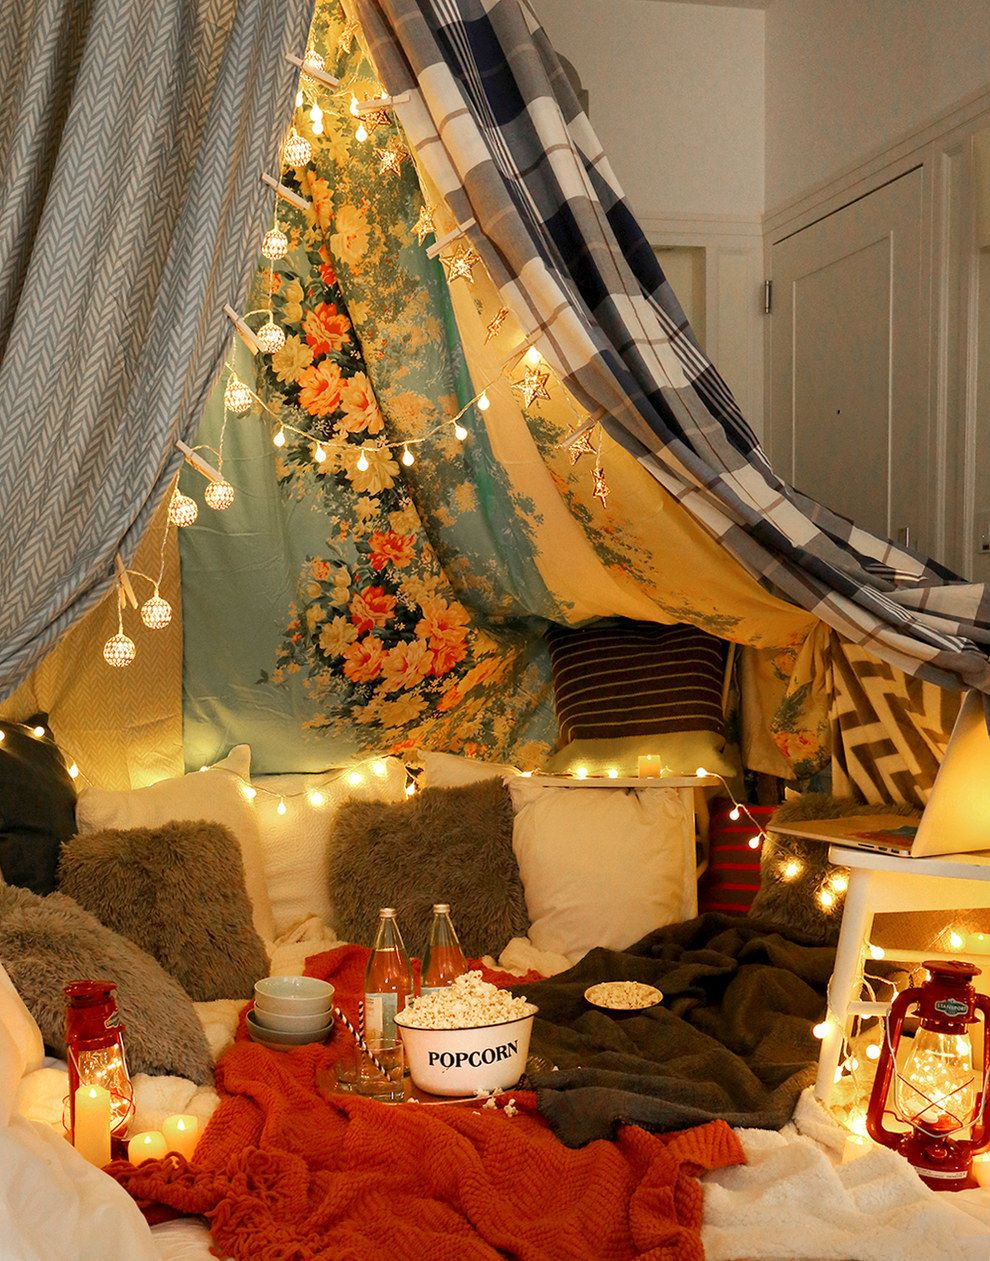 6 Steps To Having The Blanket Fort Movie Night Of Your Dreams My